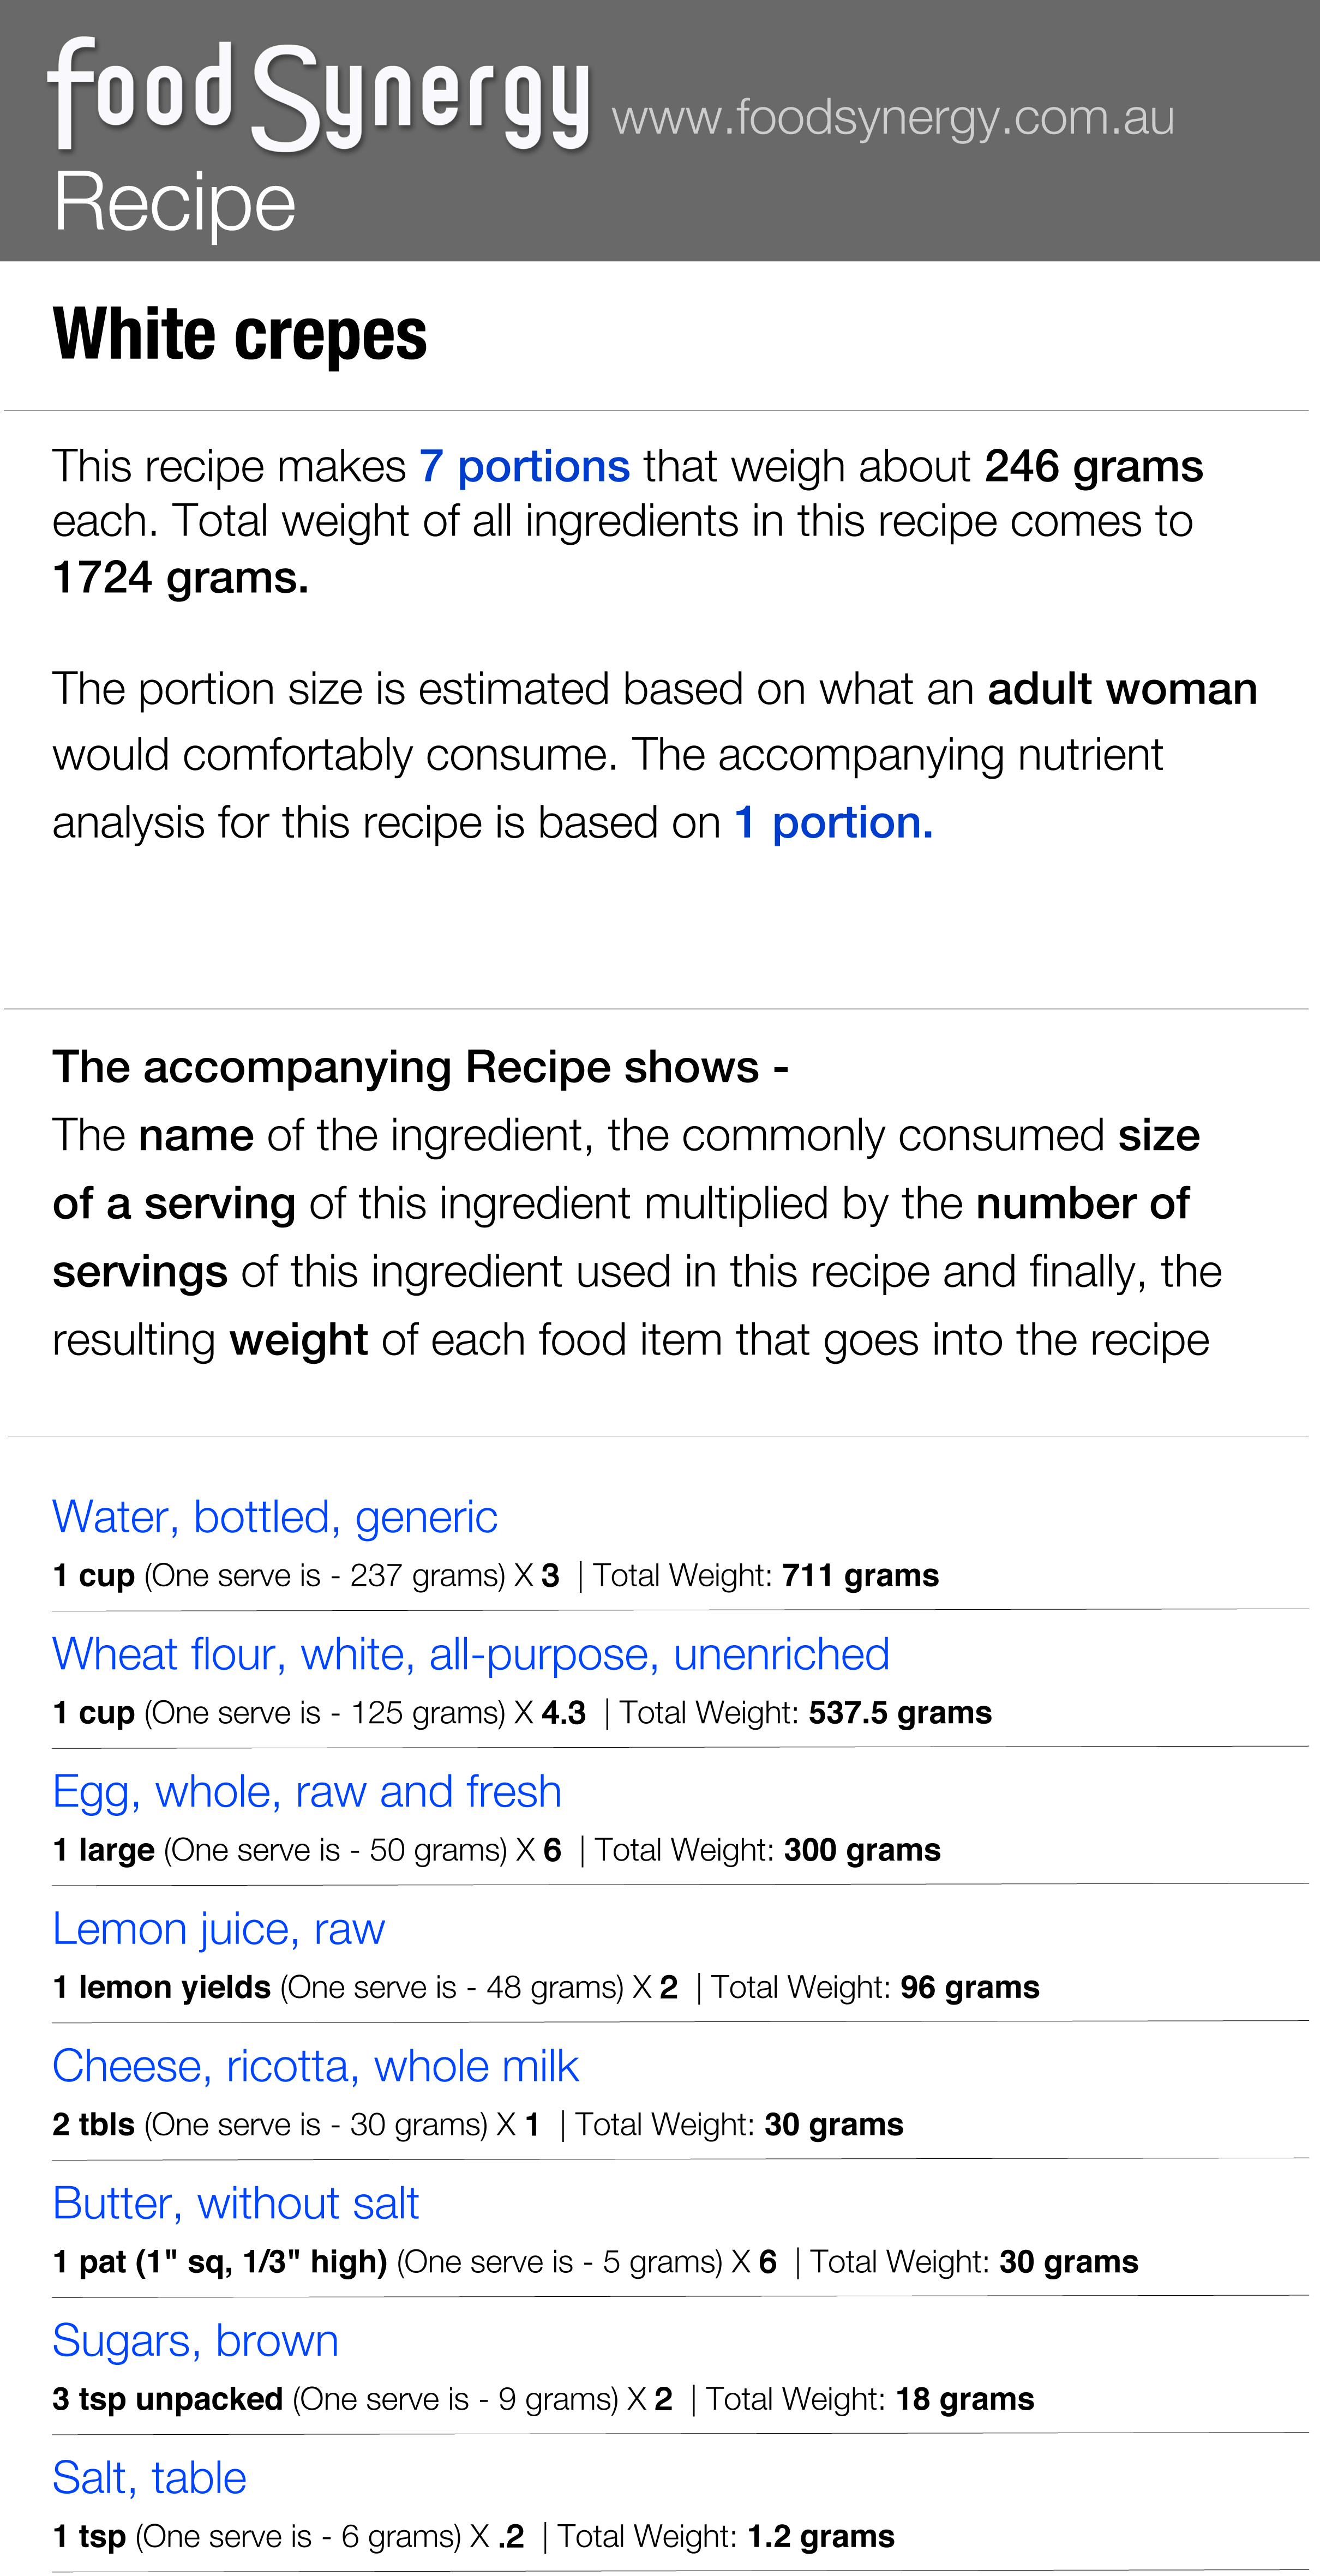 White-crepes-Recipe-and-Nutrient-Analysis